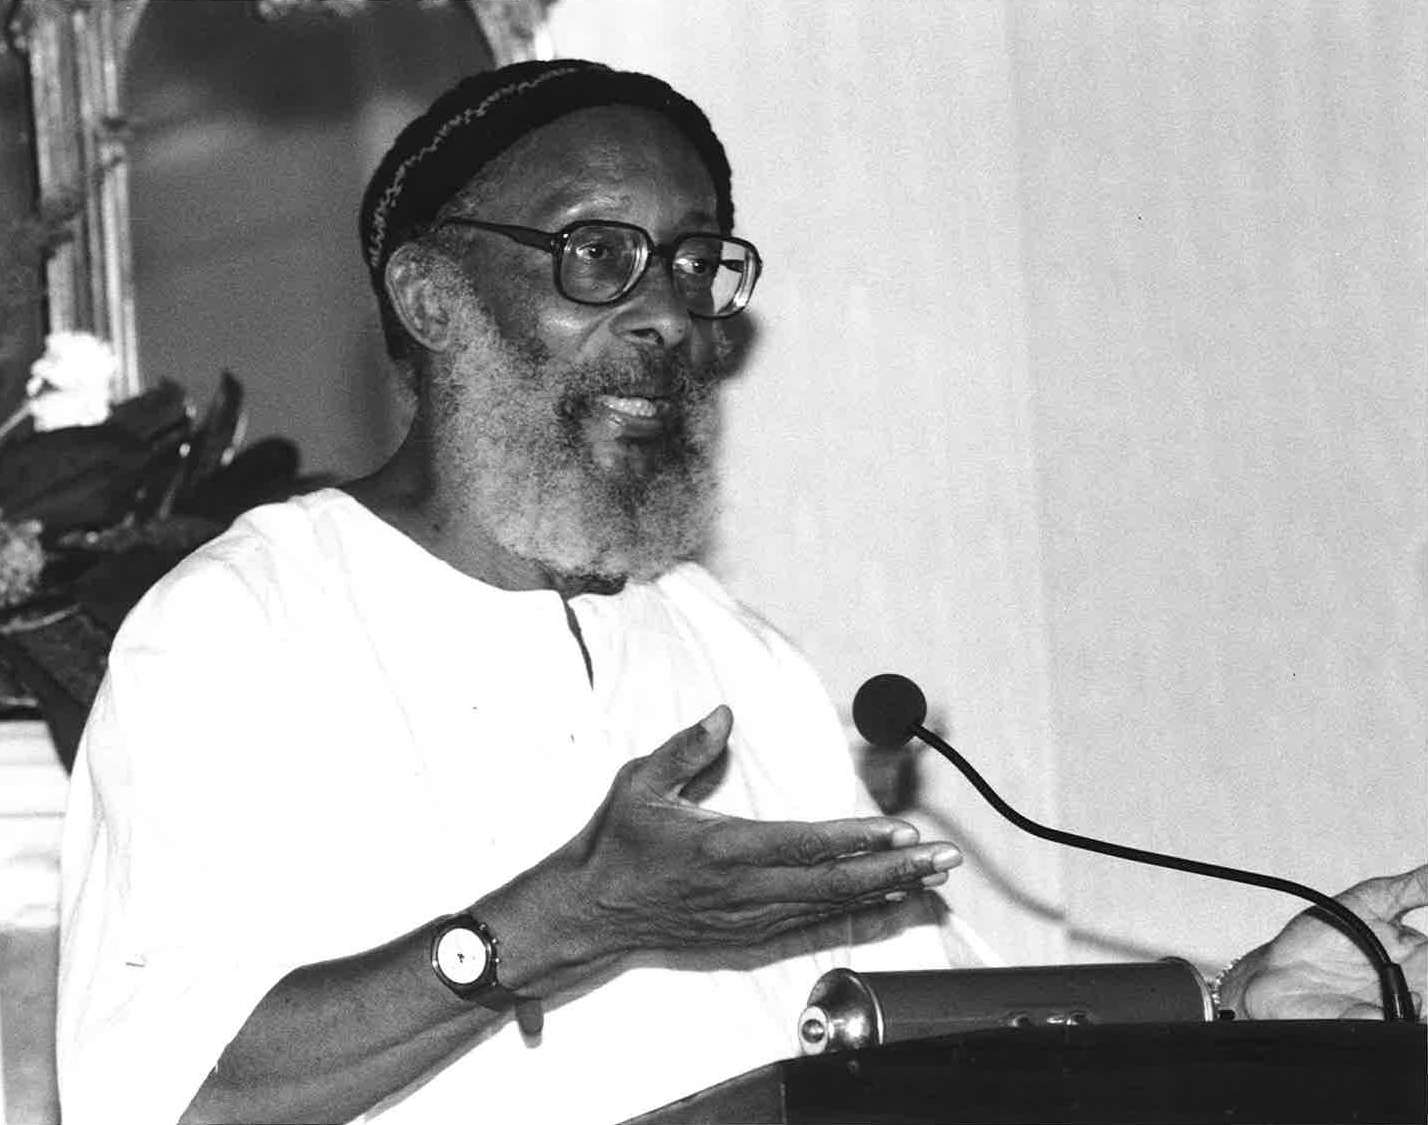 Noted Barbadian Poet and Historian, Edward Kamau Brathwaite, Is Dead At 89